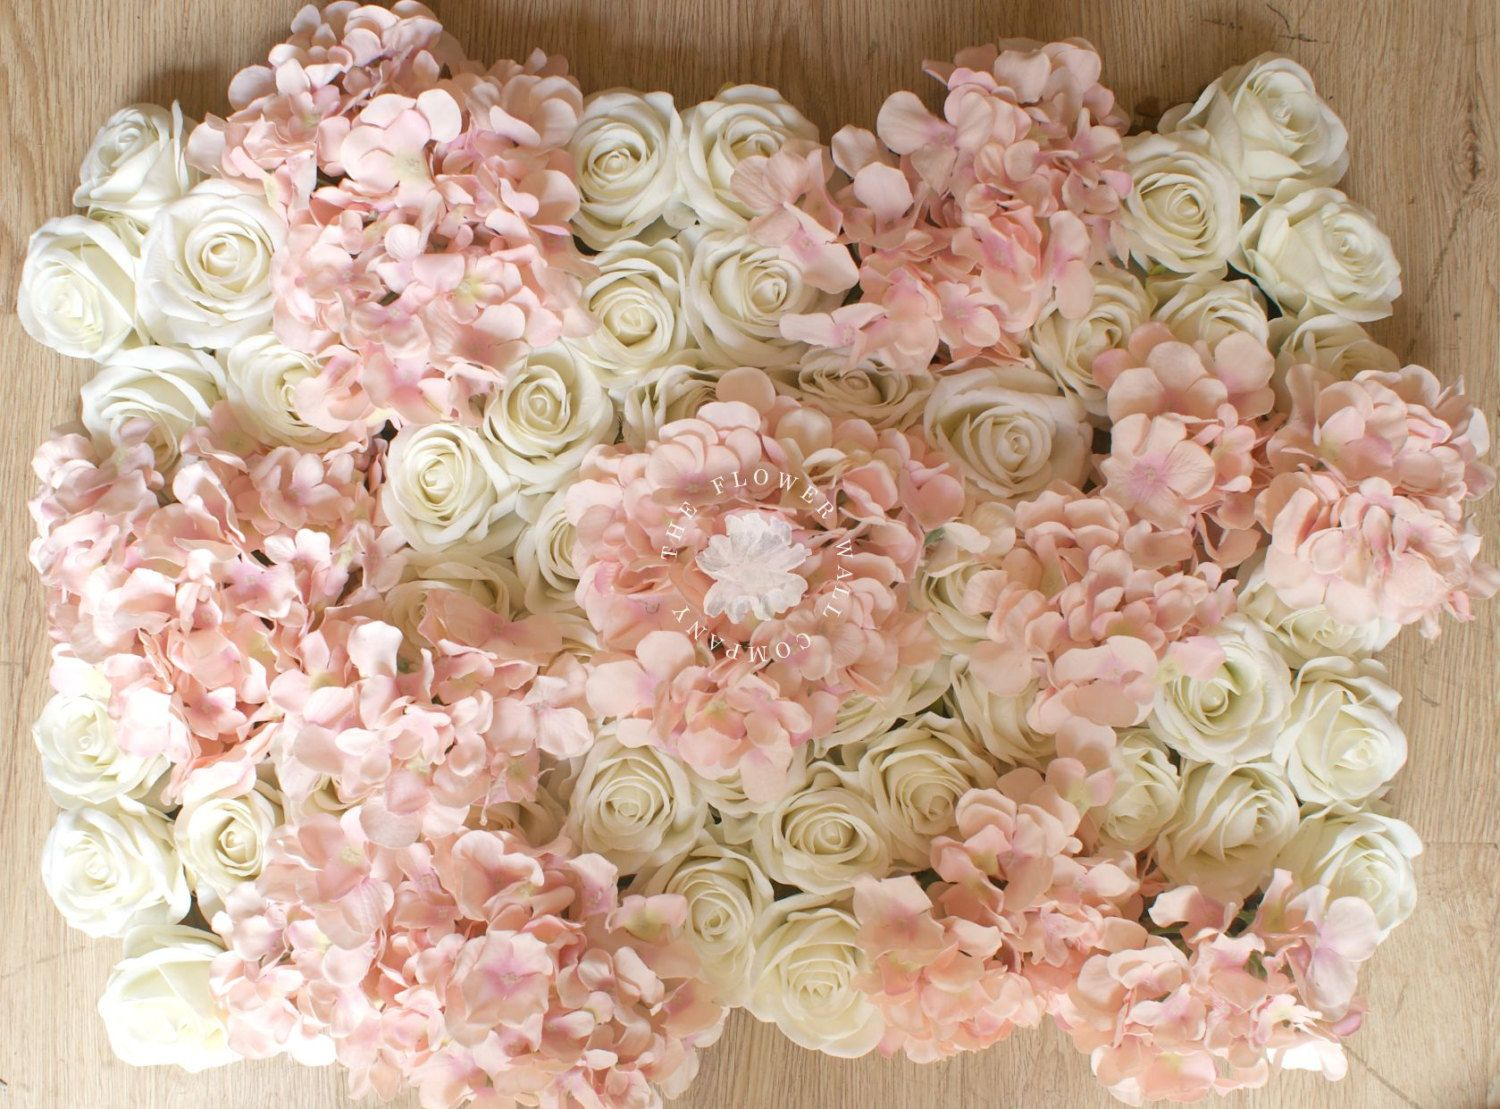 Blush Pink And Cream Rose Hydrangea Floral Backdrop Flower Wall Panel For The Diy Wedding Handmade Flowers Paper Flower Wall Paper Flower Backdrop